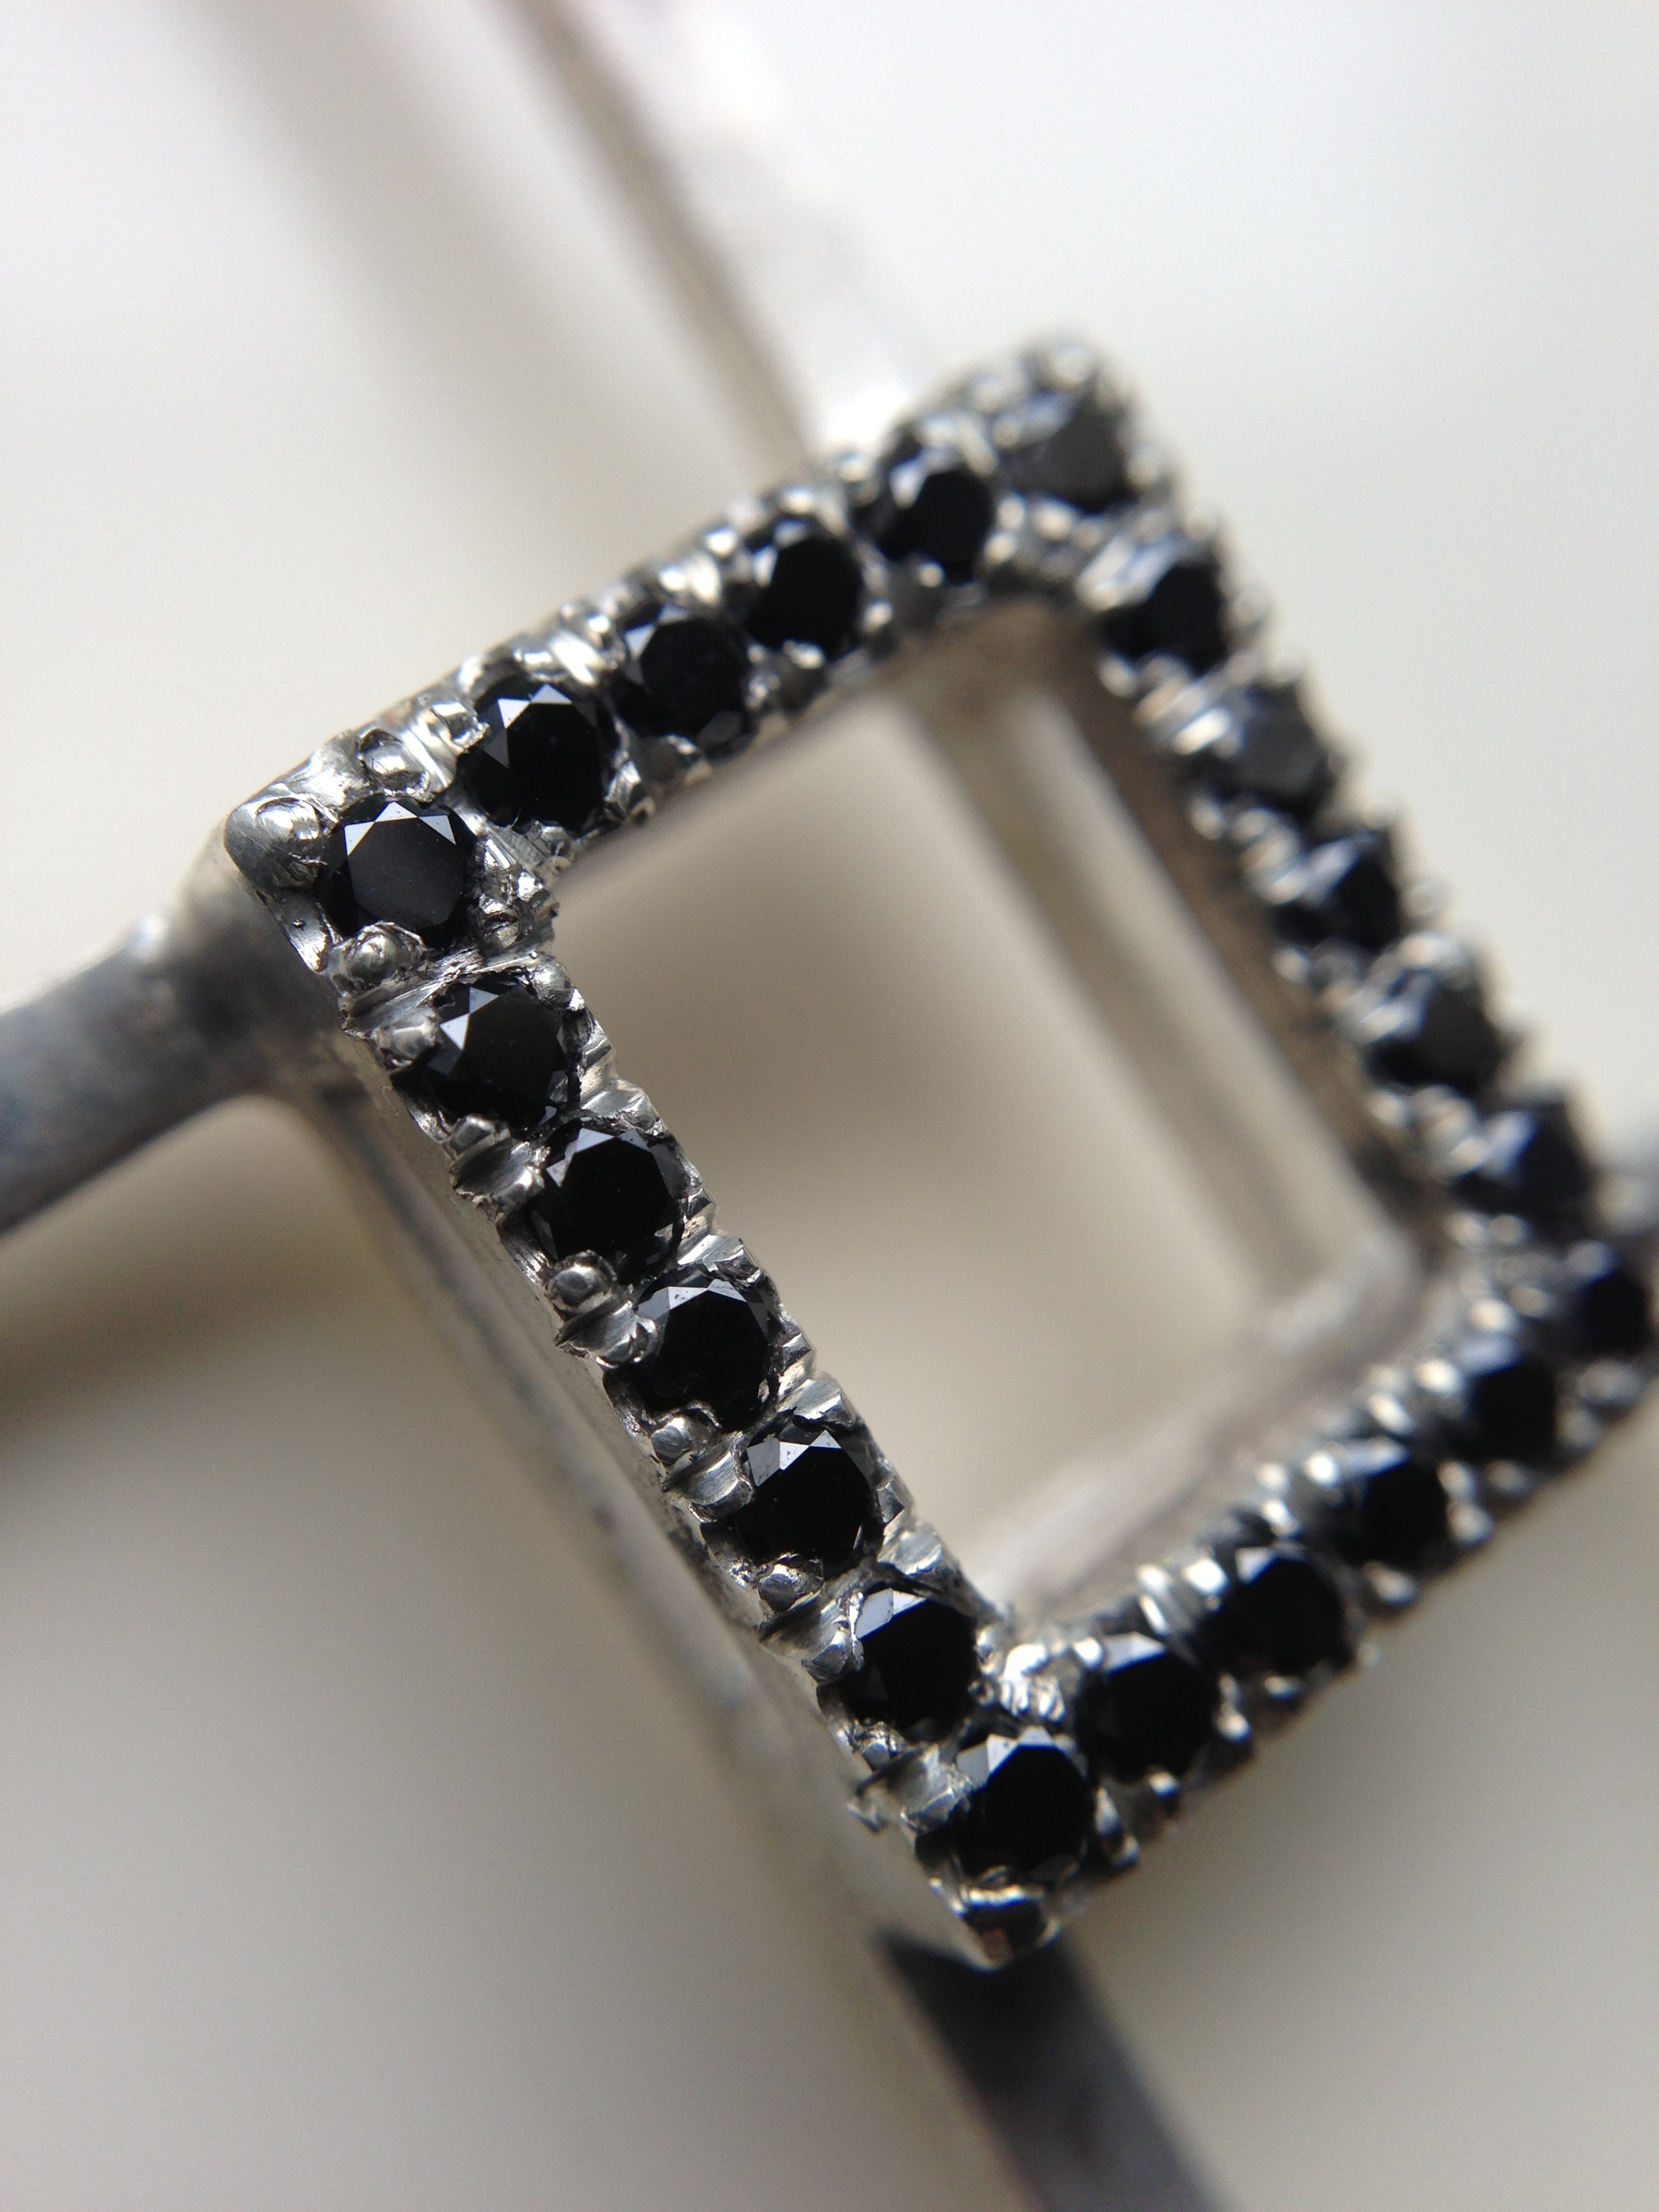 AMAZE IN 3D - SHOWN WITHBLACK DIAMONDS